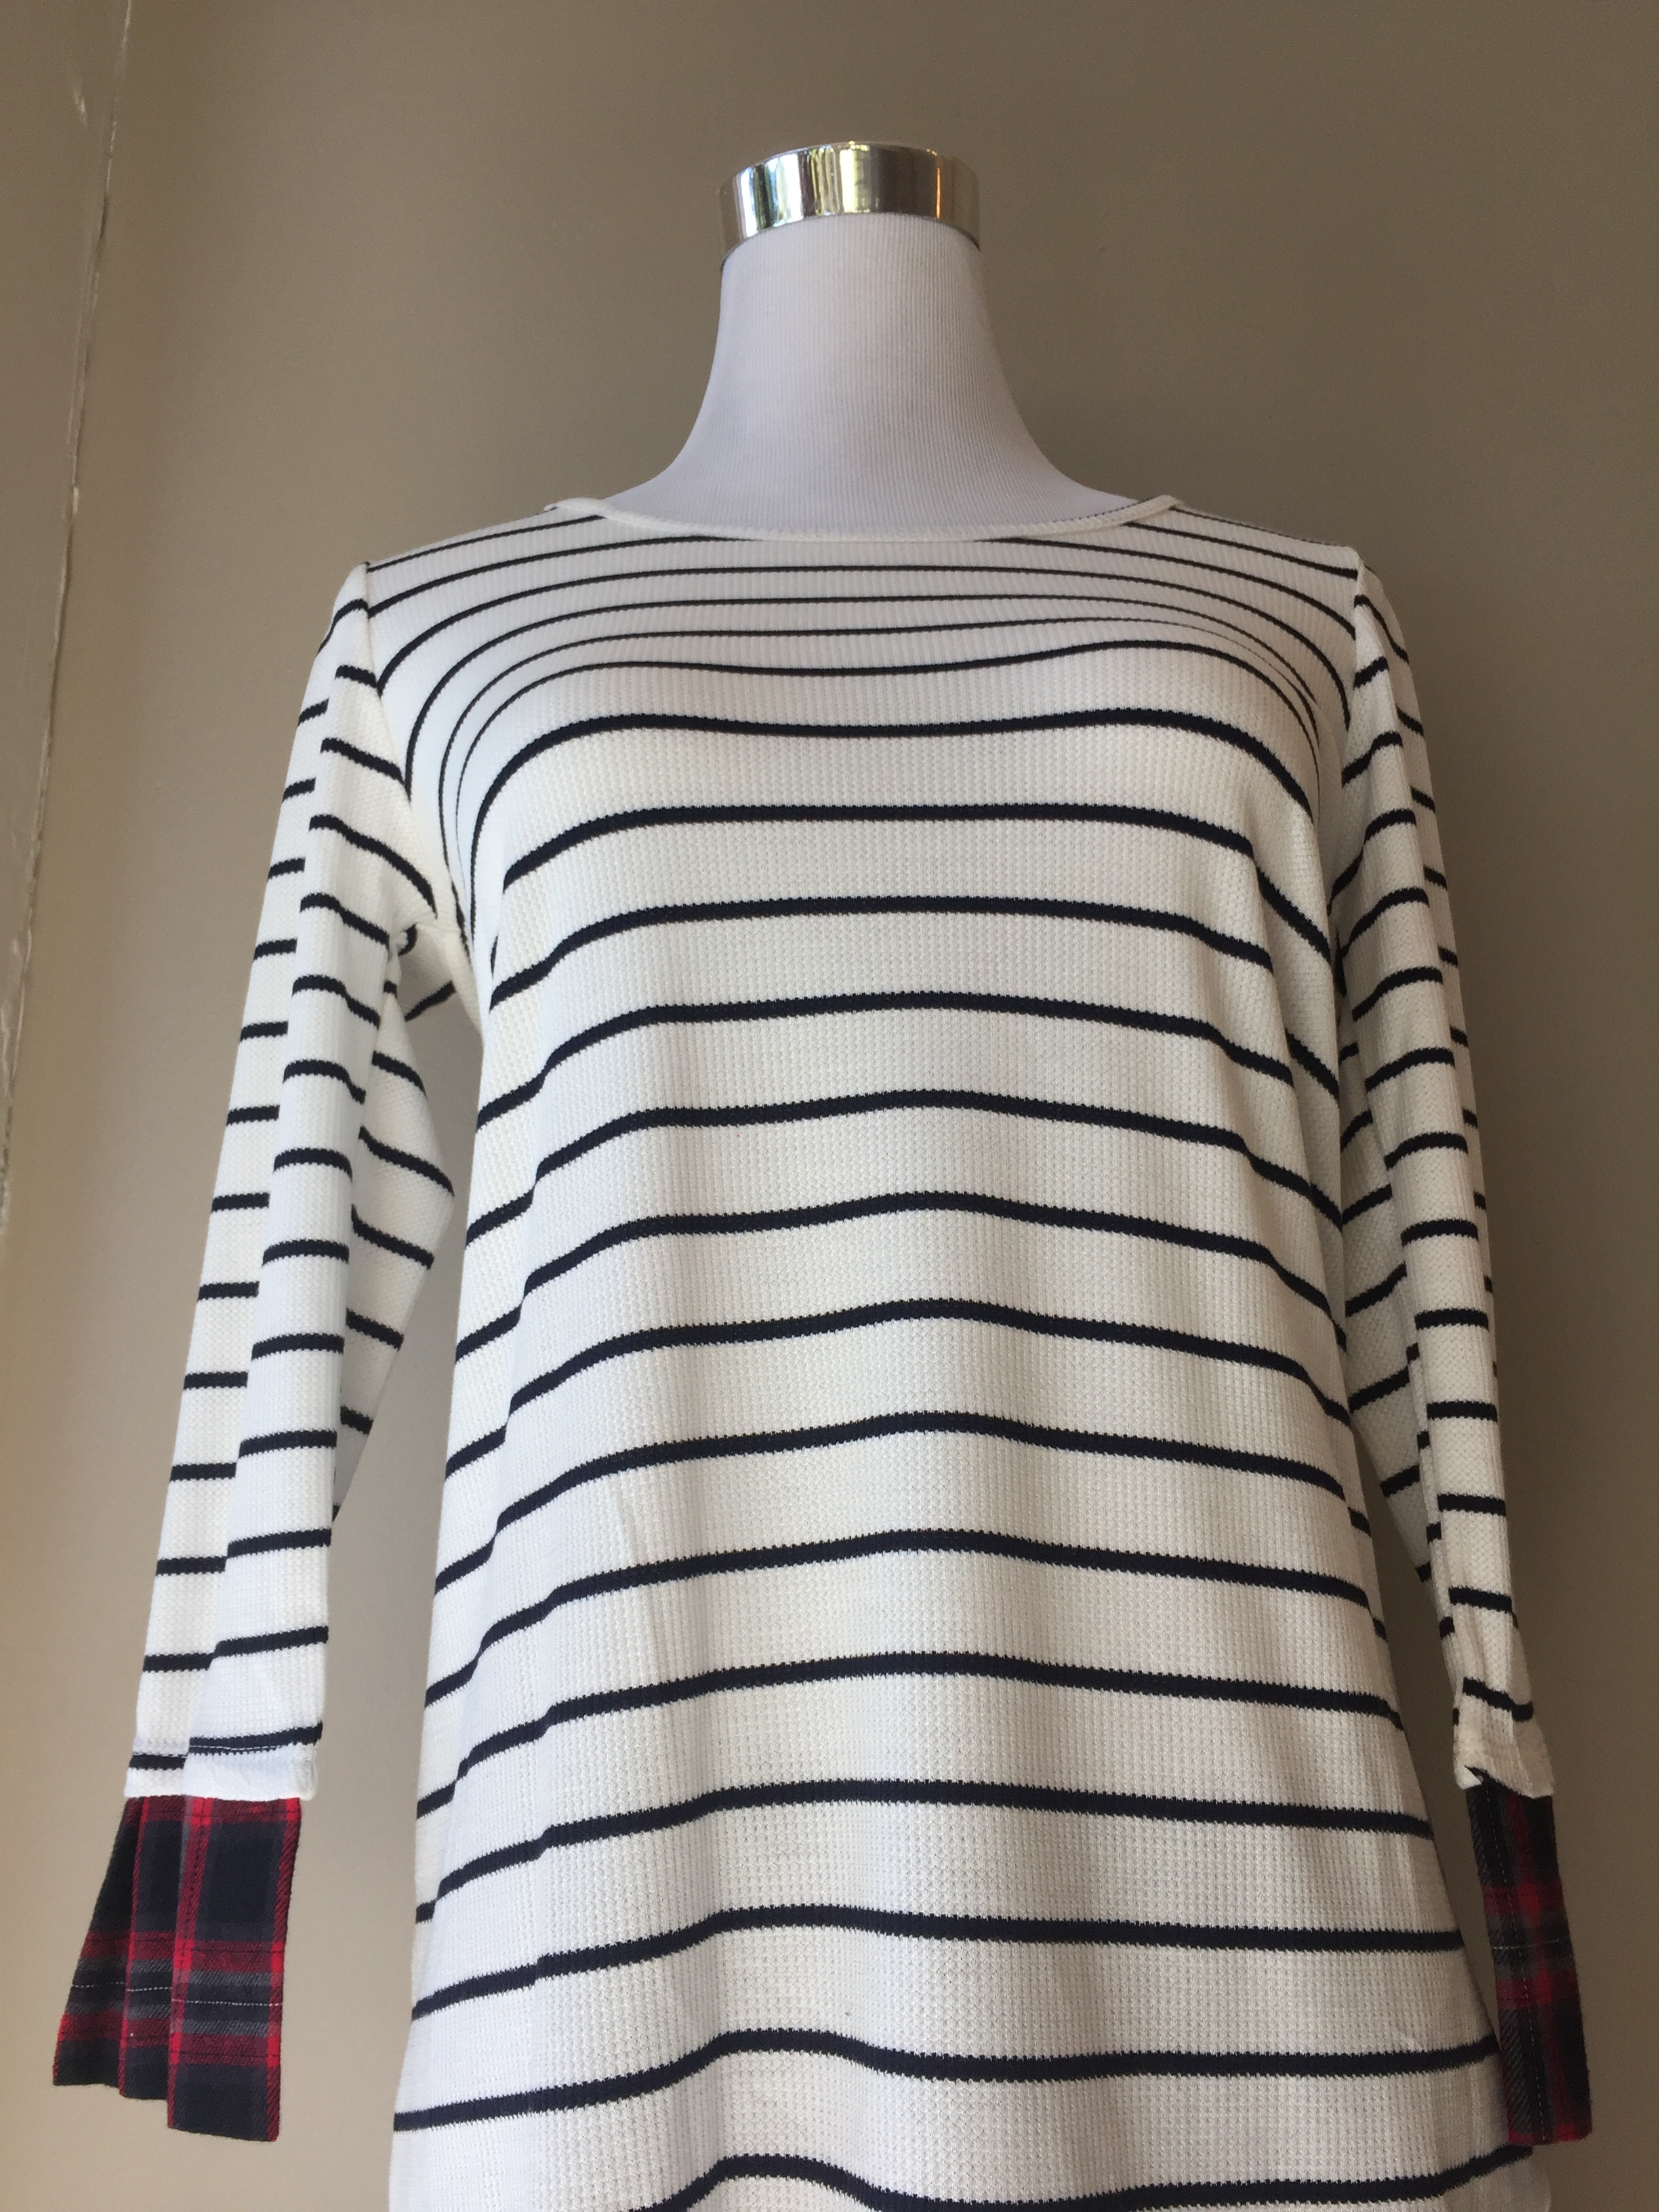 Striped top with plaid cuffs ($34)